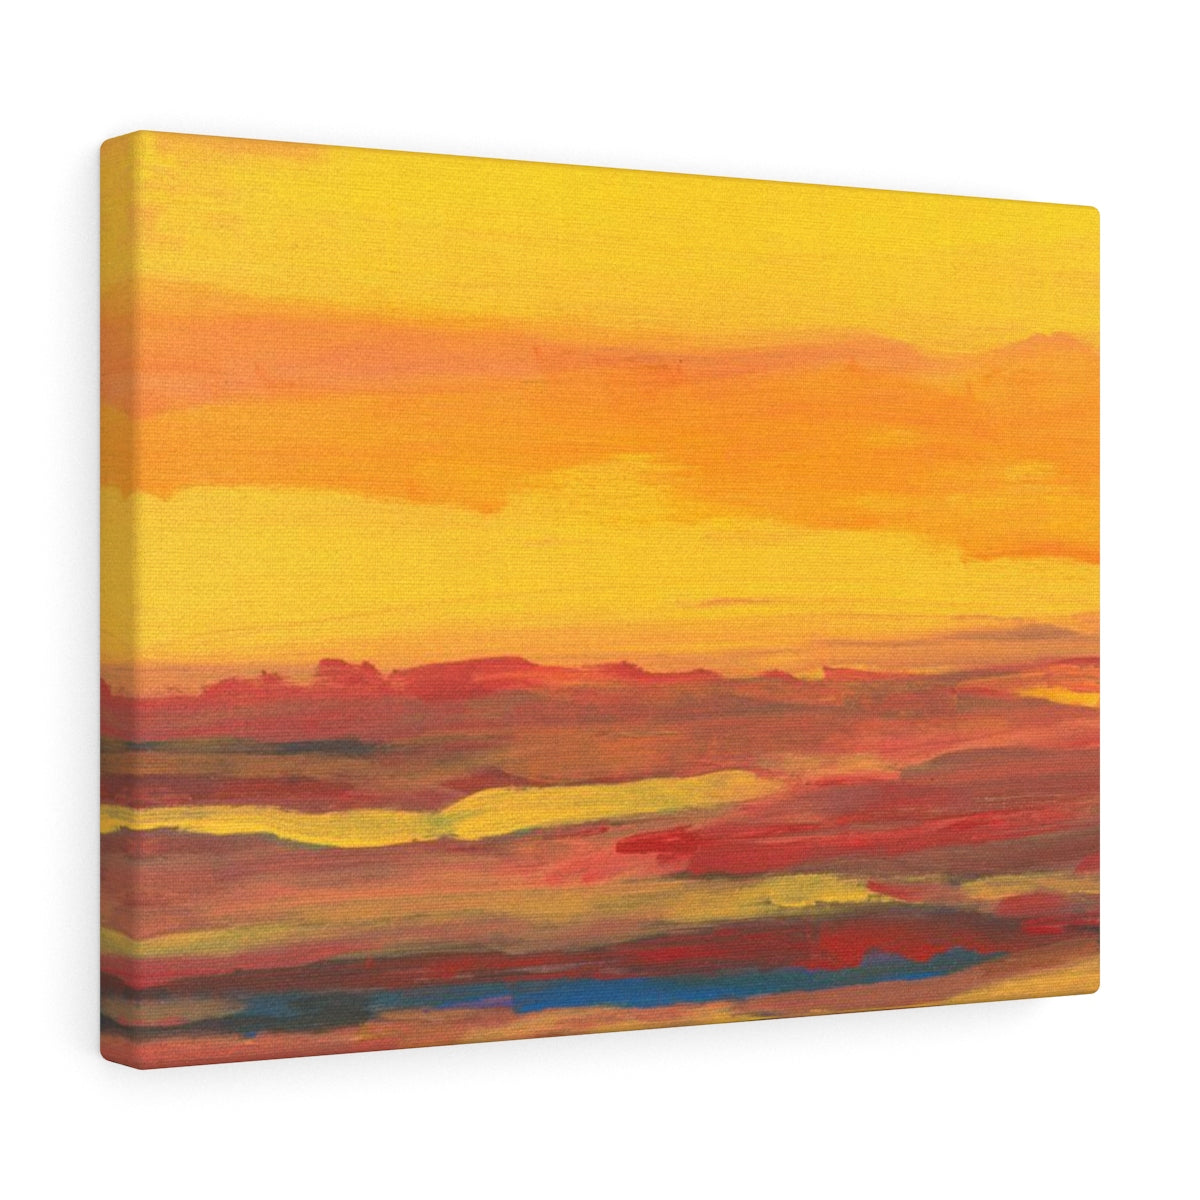 "SUNRISE  SUNSET  Canvas  Gallery Wraps  24"" X 18"""